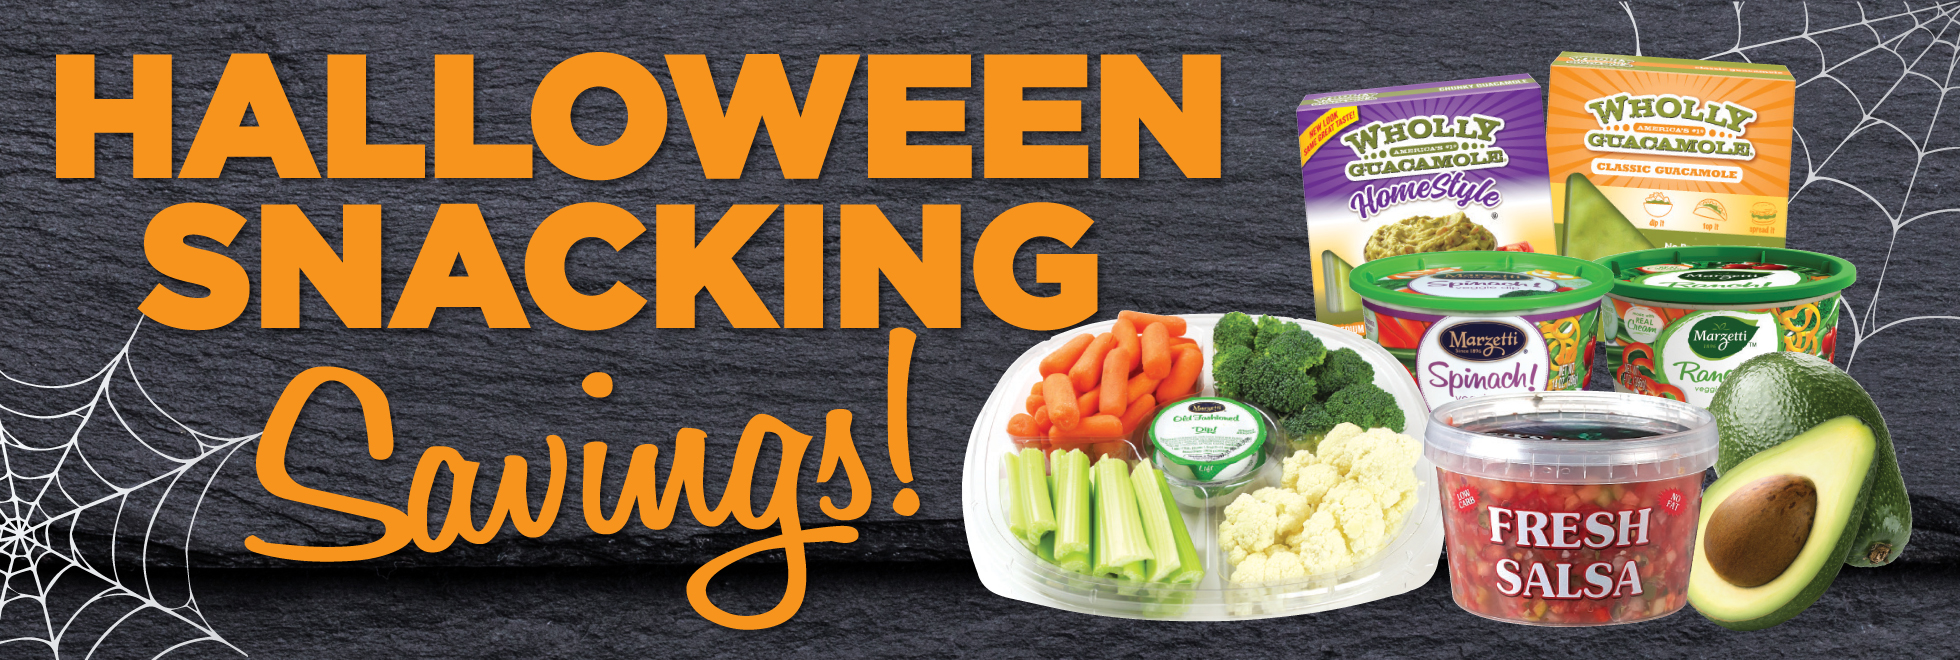 Halloween Snacking